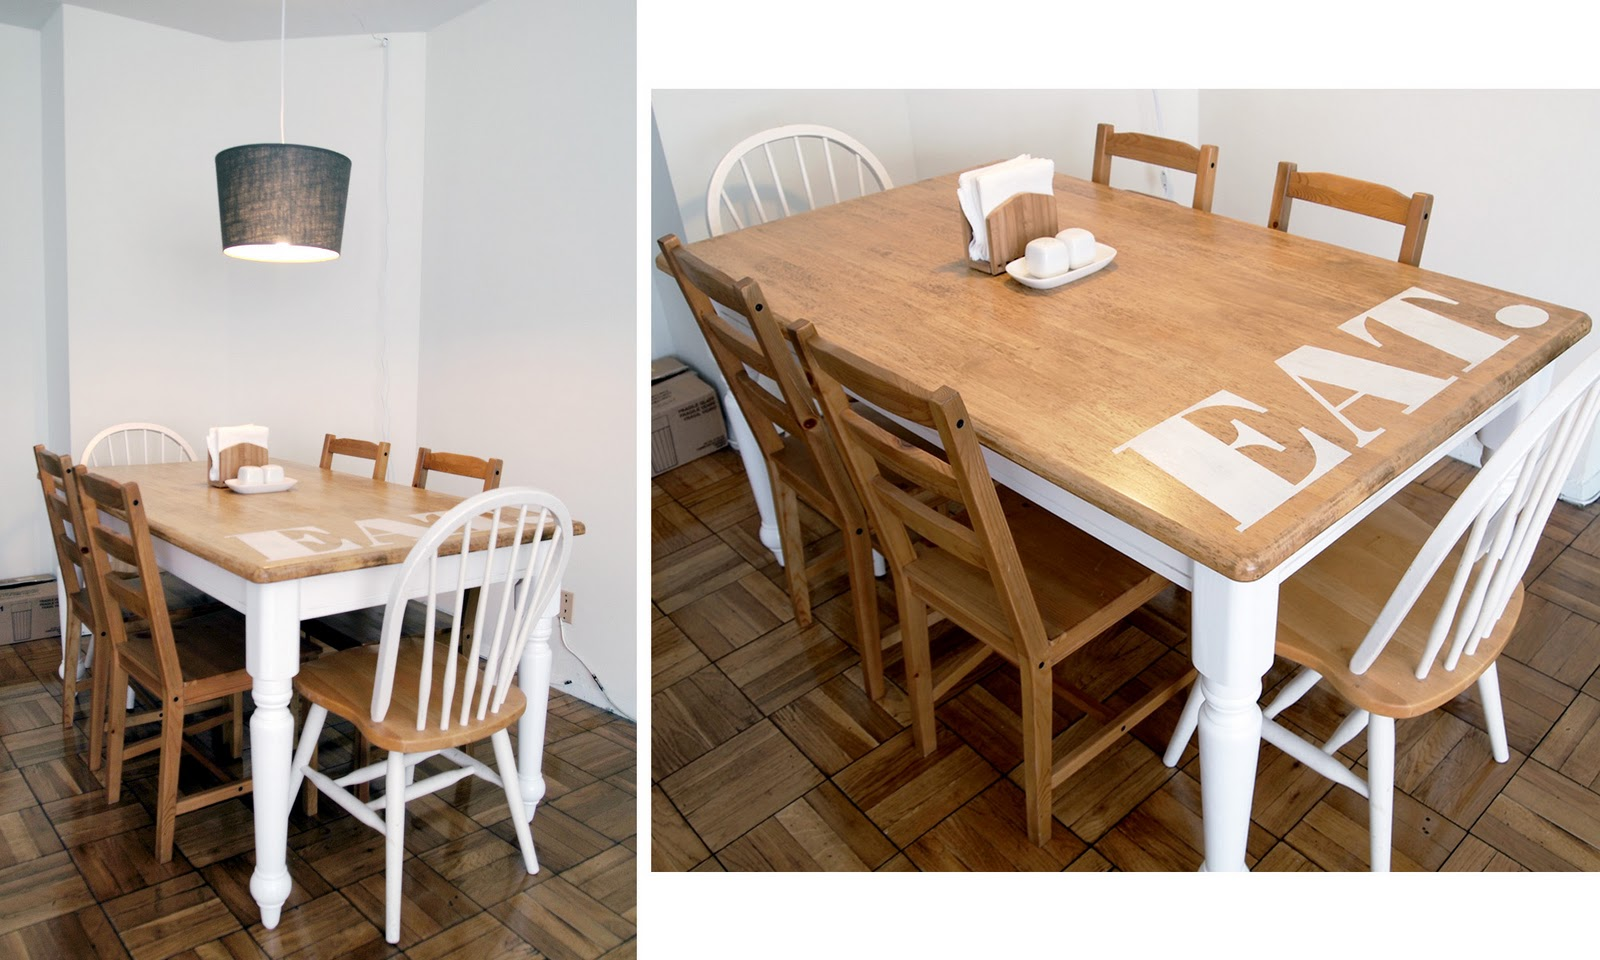 Upcycled Dining Room Chairs Contemporary Leather White Resurfaced Table  Jamie Bartlett Design